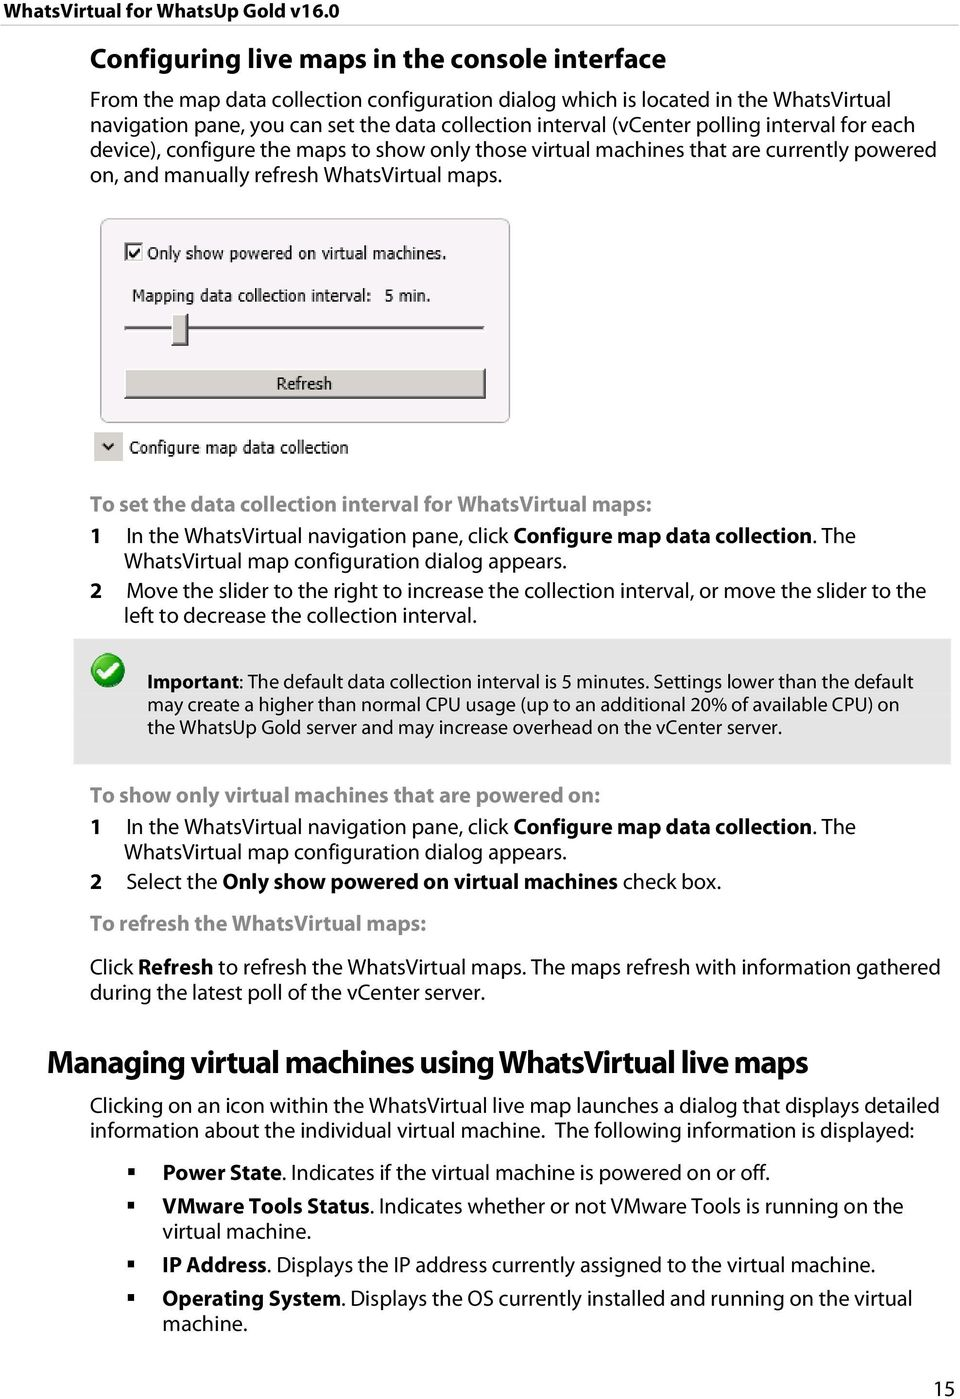 To set the data collection interval for WhatsVirtual maps: 1 In the WhatsVirtual navigation pane, click Configure map data collection. The WhatsVirtual map configuration dialog appears.